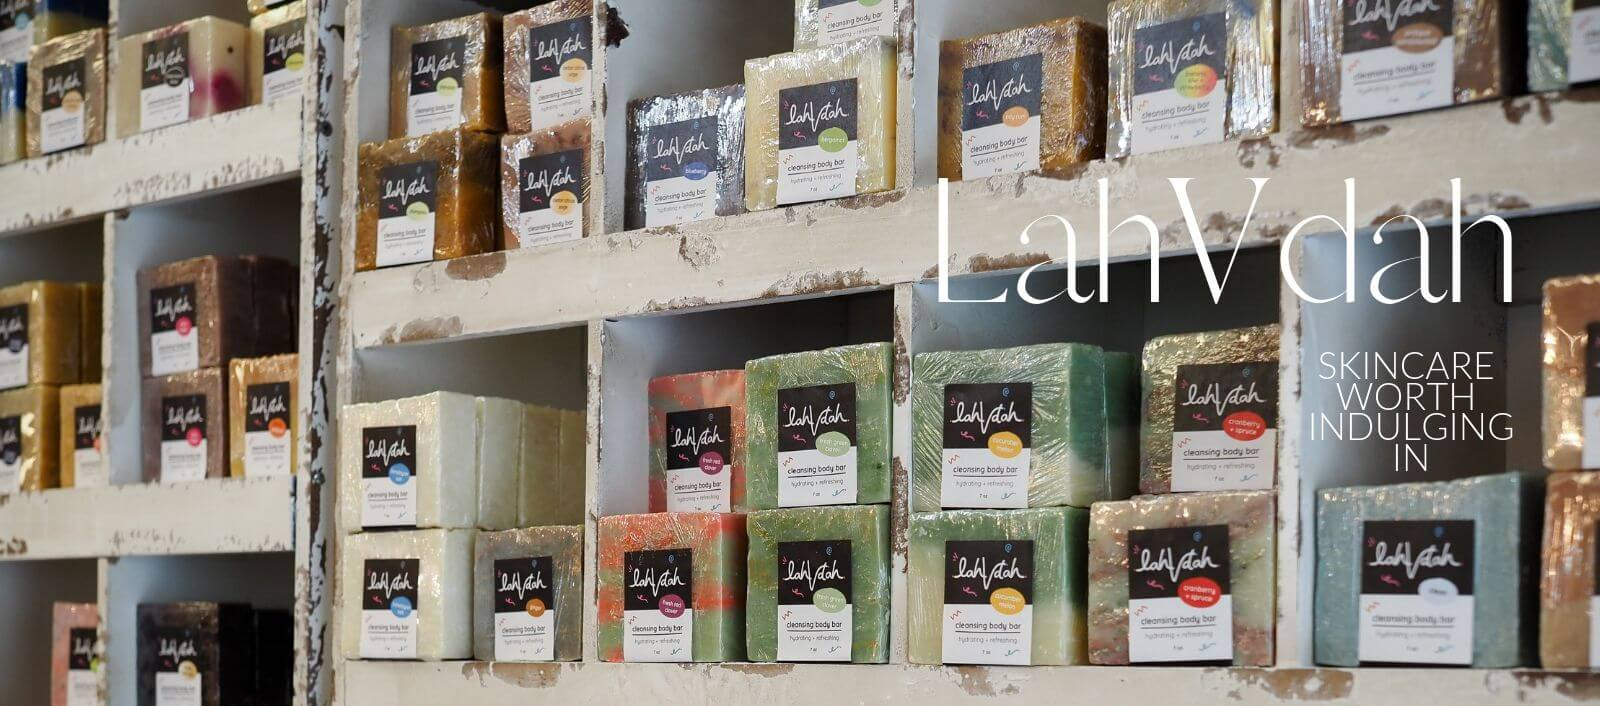 A Wall Stacked Full of LahVDah Handmade Soaps